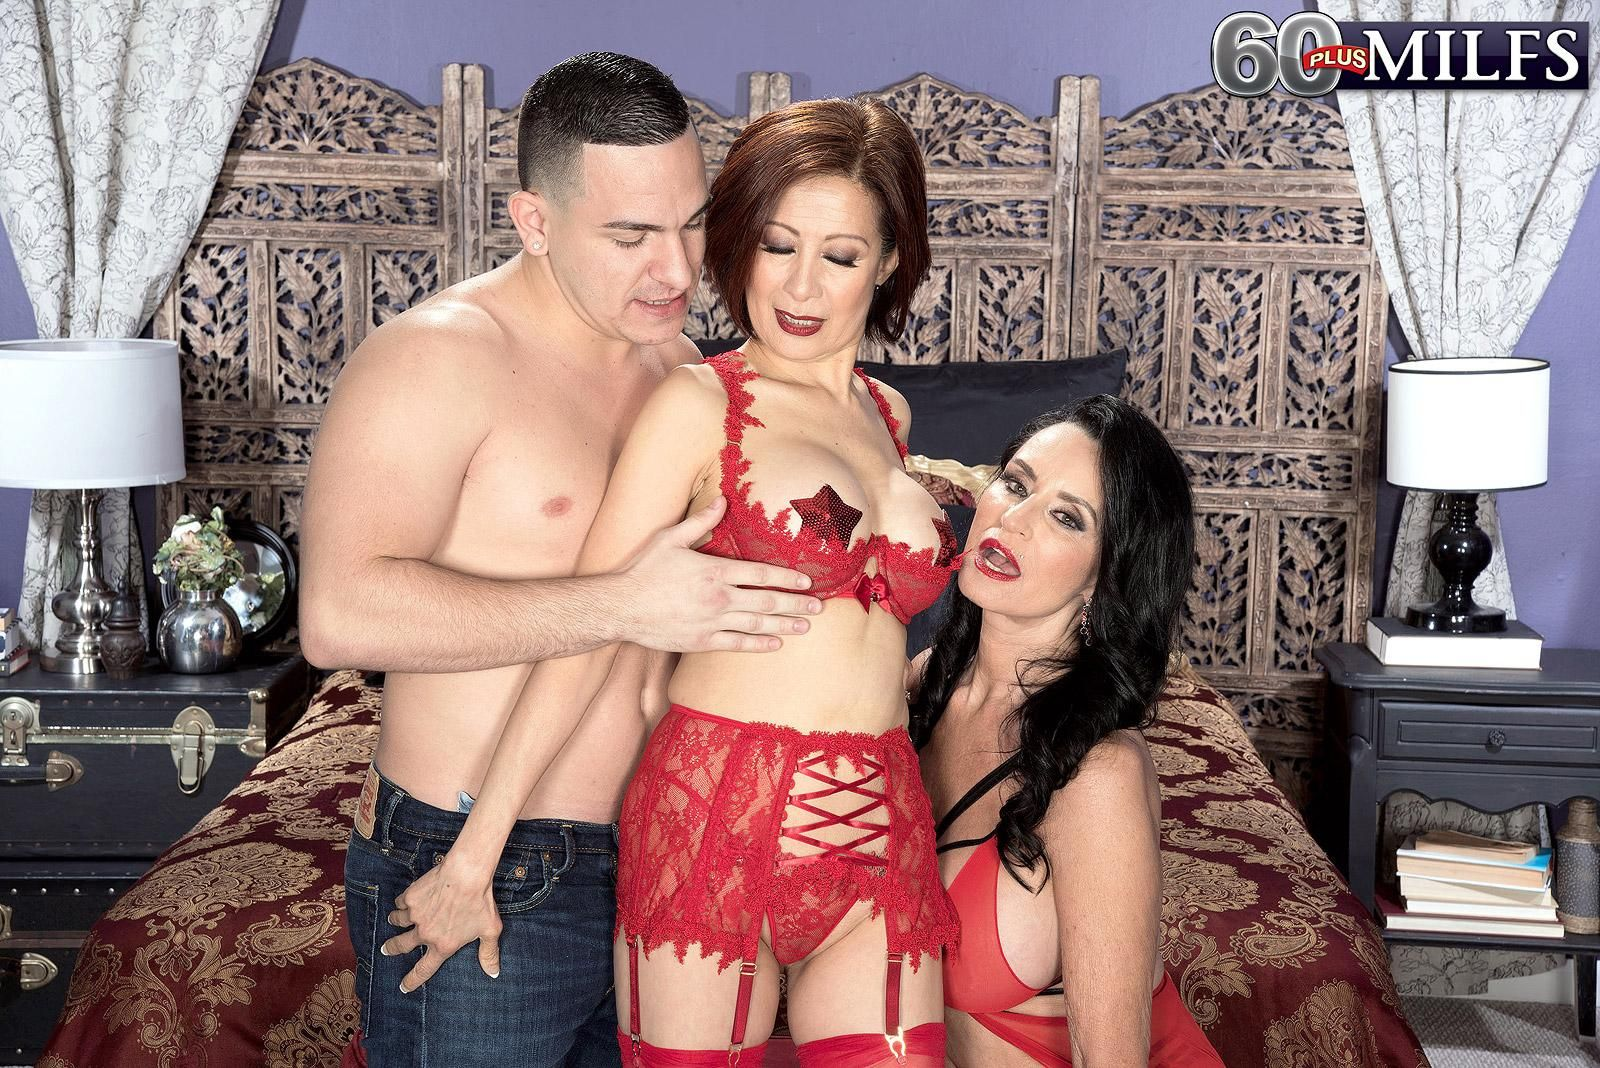 MILFs over 60 Rita Daniels and Kim Anh have a threesome with a younger man